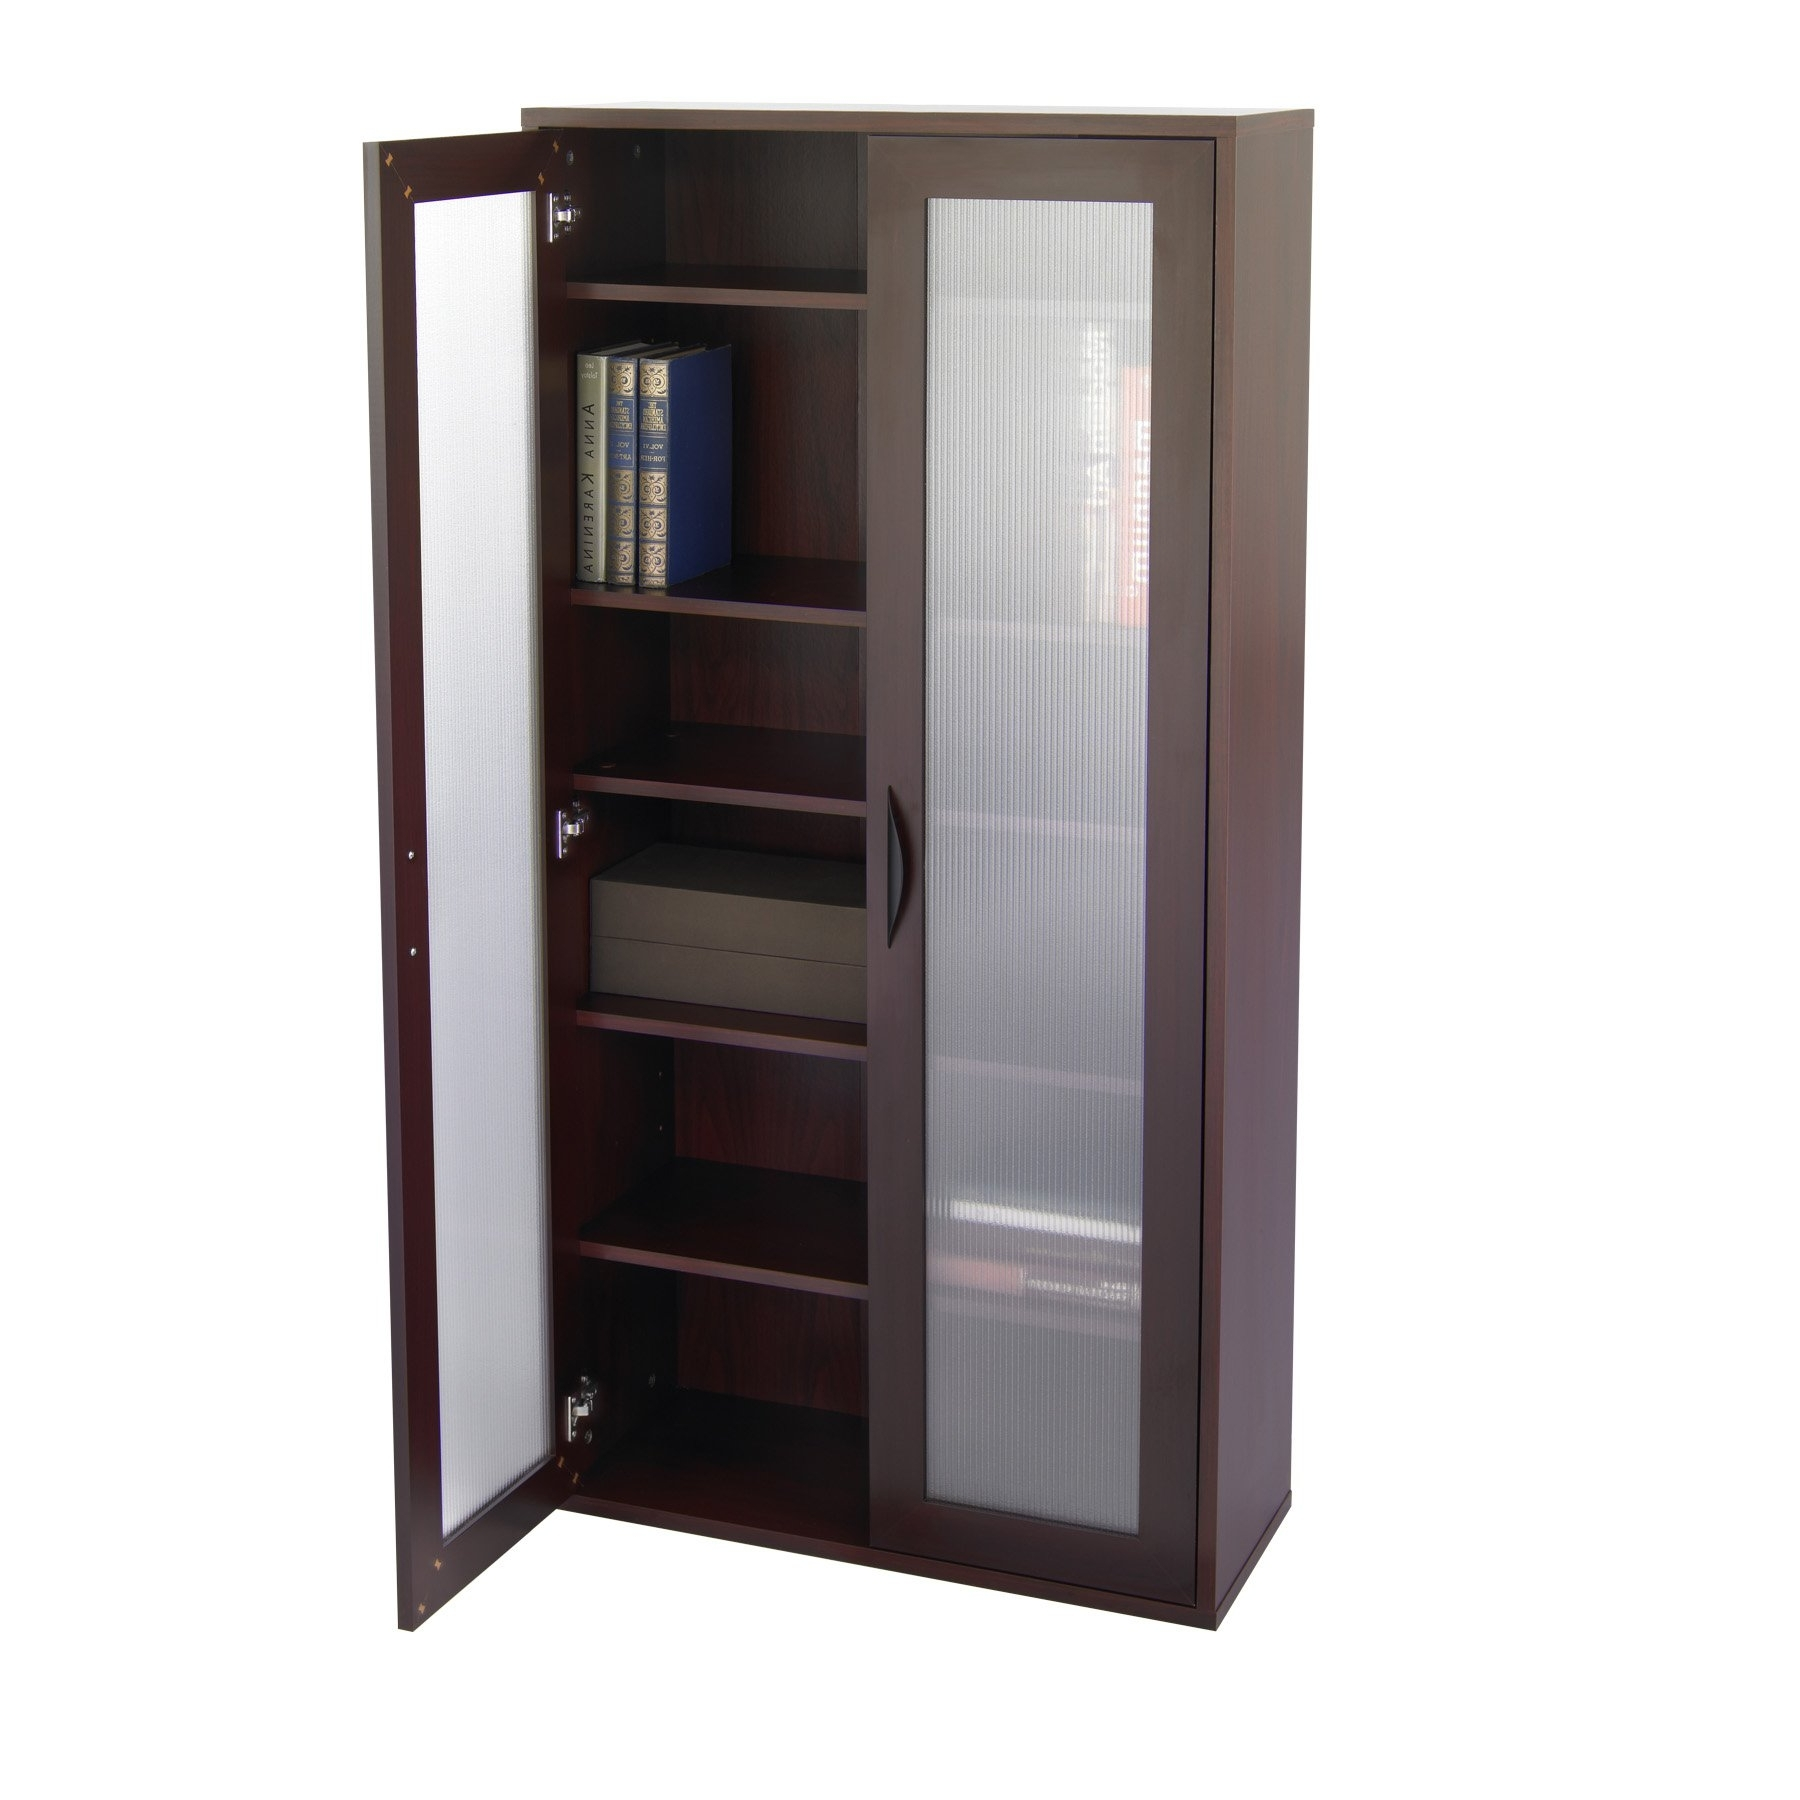 Tall Bookcases With Doors Regarding Widely Used Storage Bookcase With Glass Doors Tall – Mahogany – Walmart (View 4 of 15)